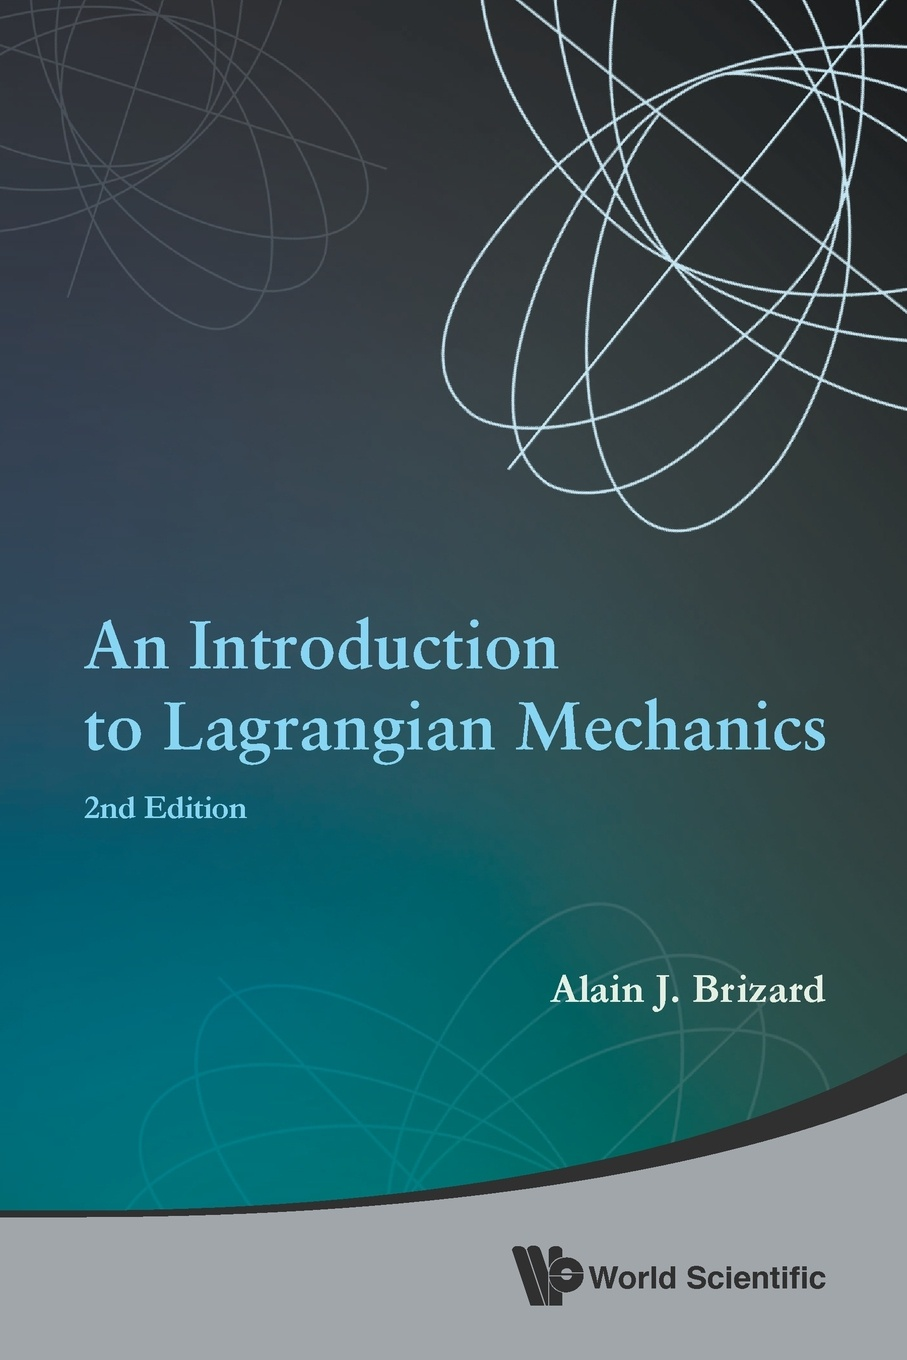 ALAIN J BRIZARD An Introduction to Lagrangian Mechanics. Second Edition stevan pilipovic fractional calculus with applications in mechanics wave propagation impact and variational principles